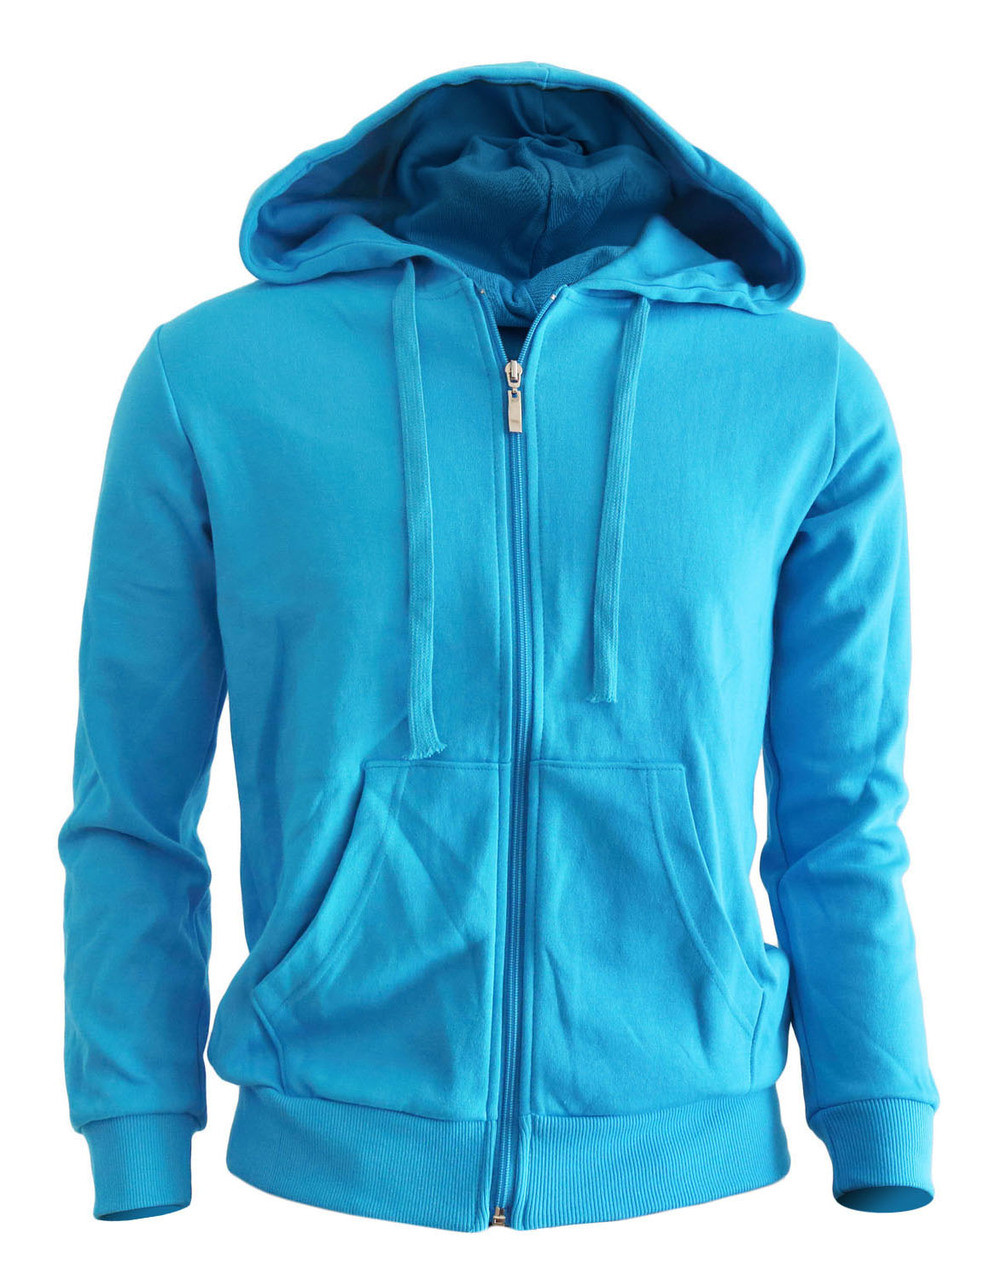 You searched for: blue hoodie jacket! Etsy is the home to thousands of handmade, vintage, and one-of-a-kind products and gifts related to your search. No matter what you're looking for or where you are in the world, our global marketplace of sellers can help you find unique and affordable options. Let's get started!